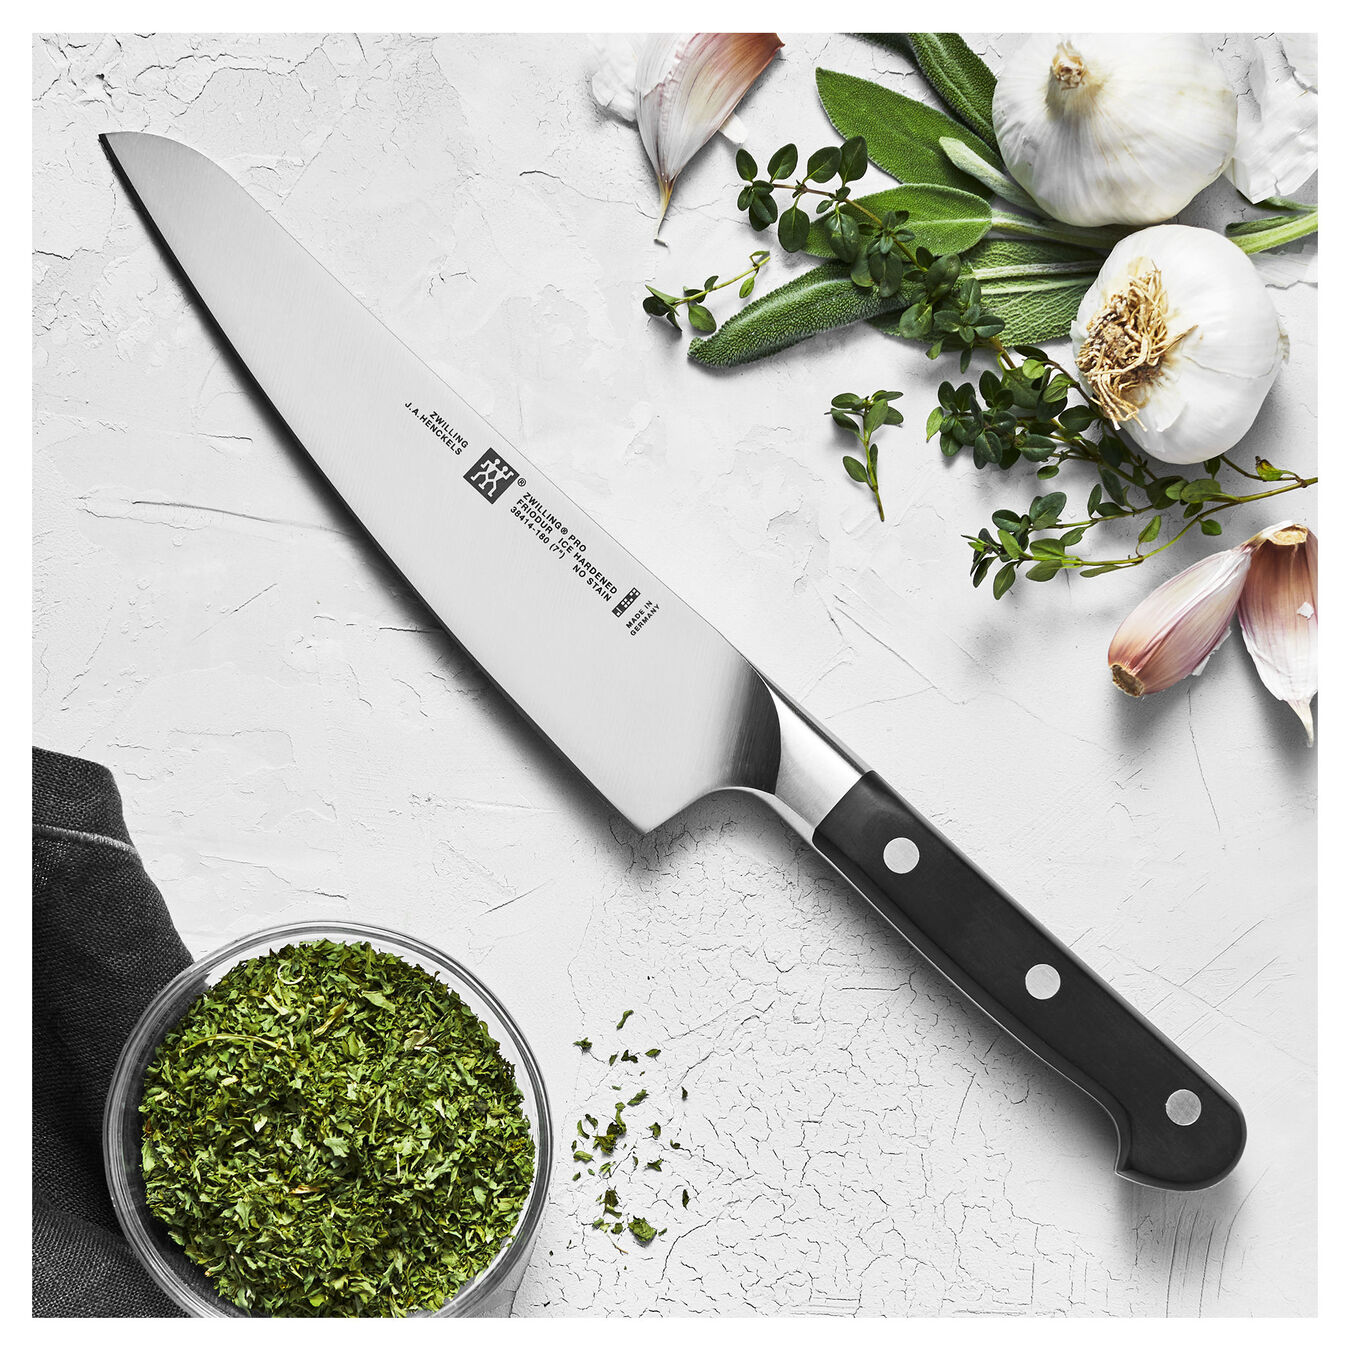 Coltello Chef compact liscio - 18 cm, forgiato,,large 2